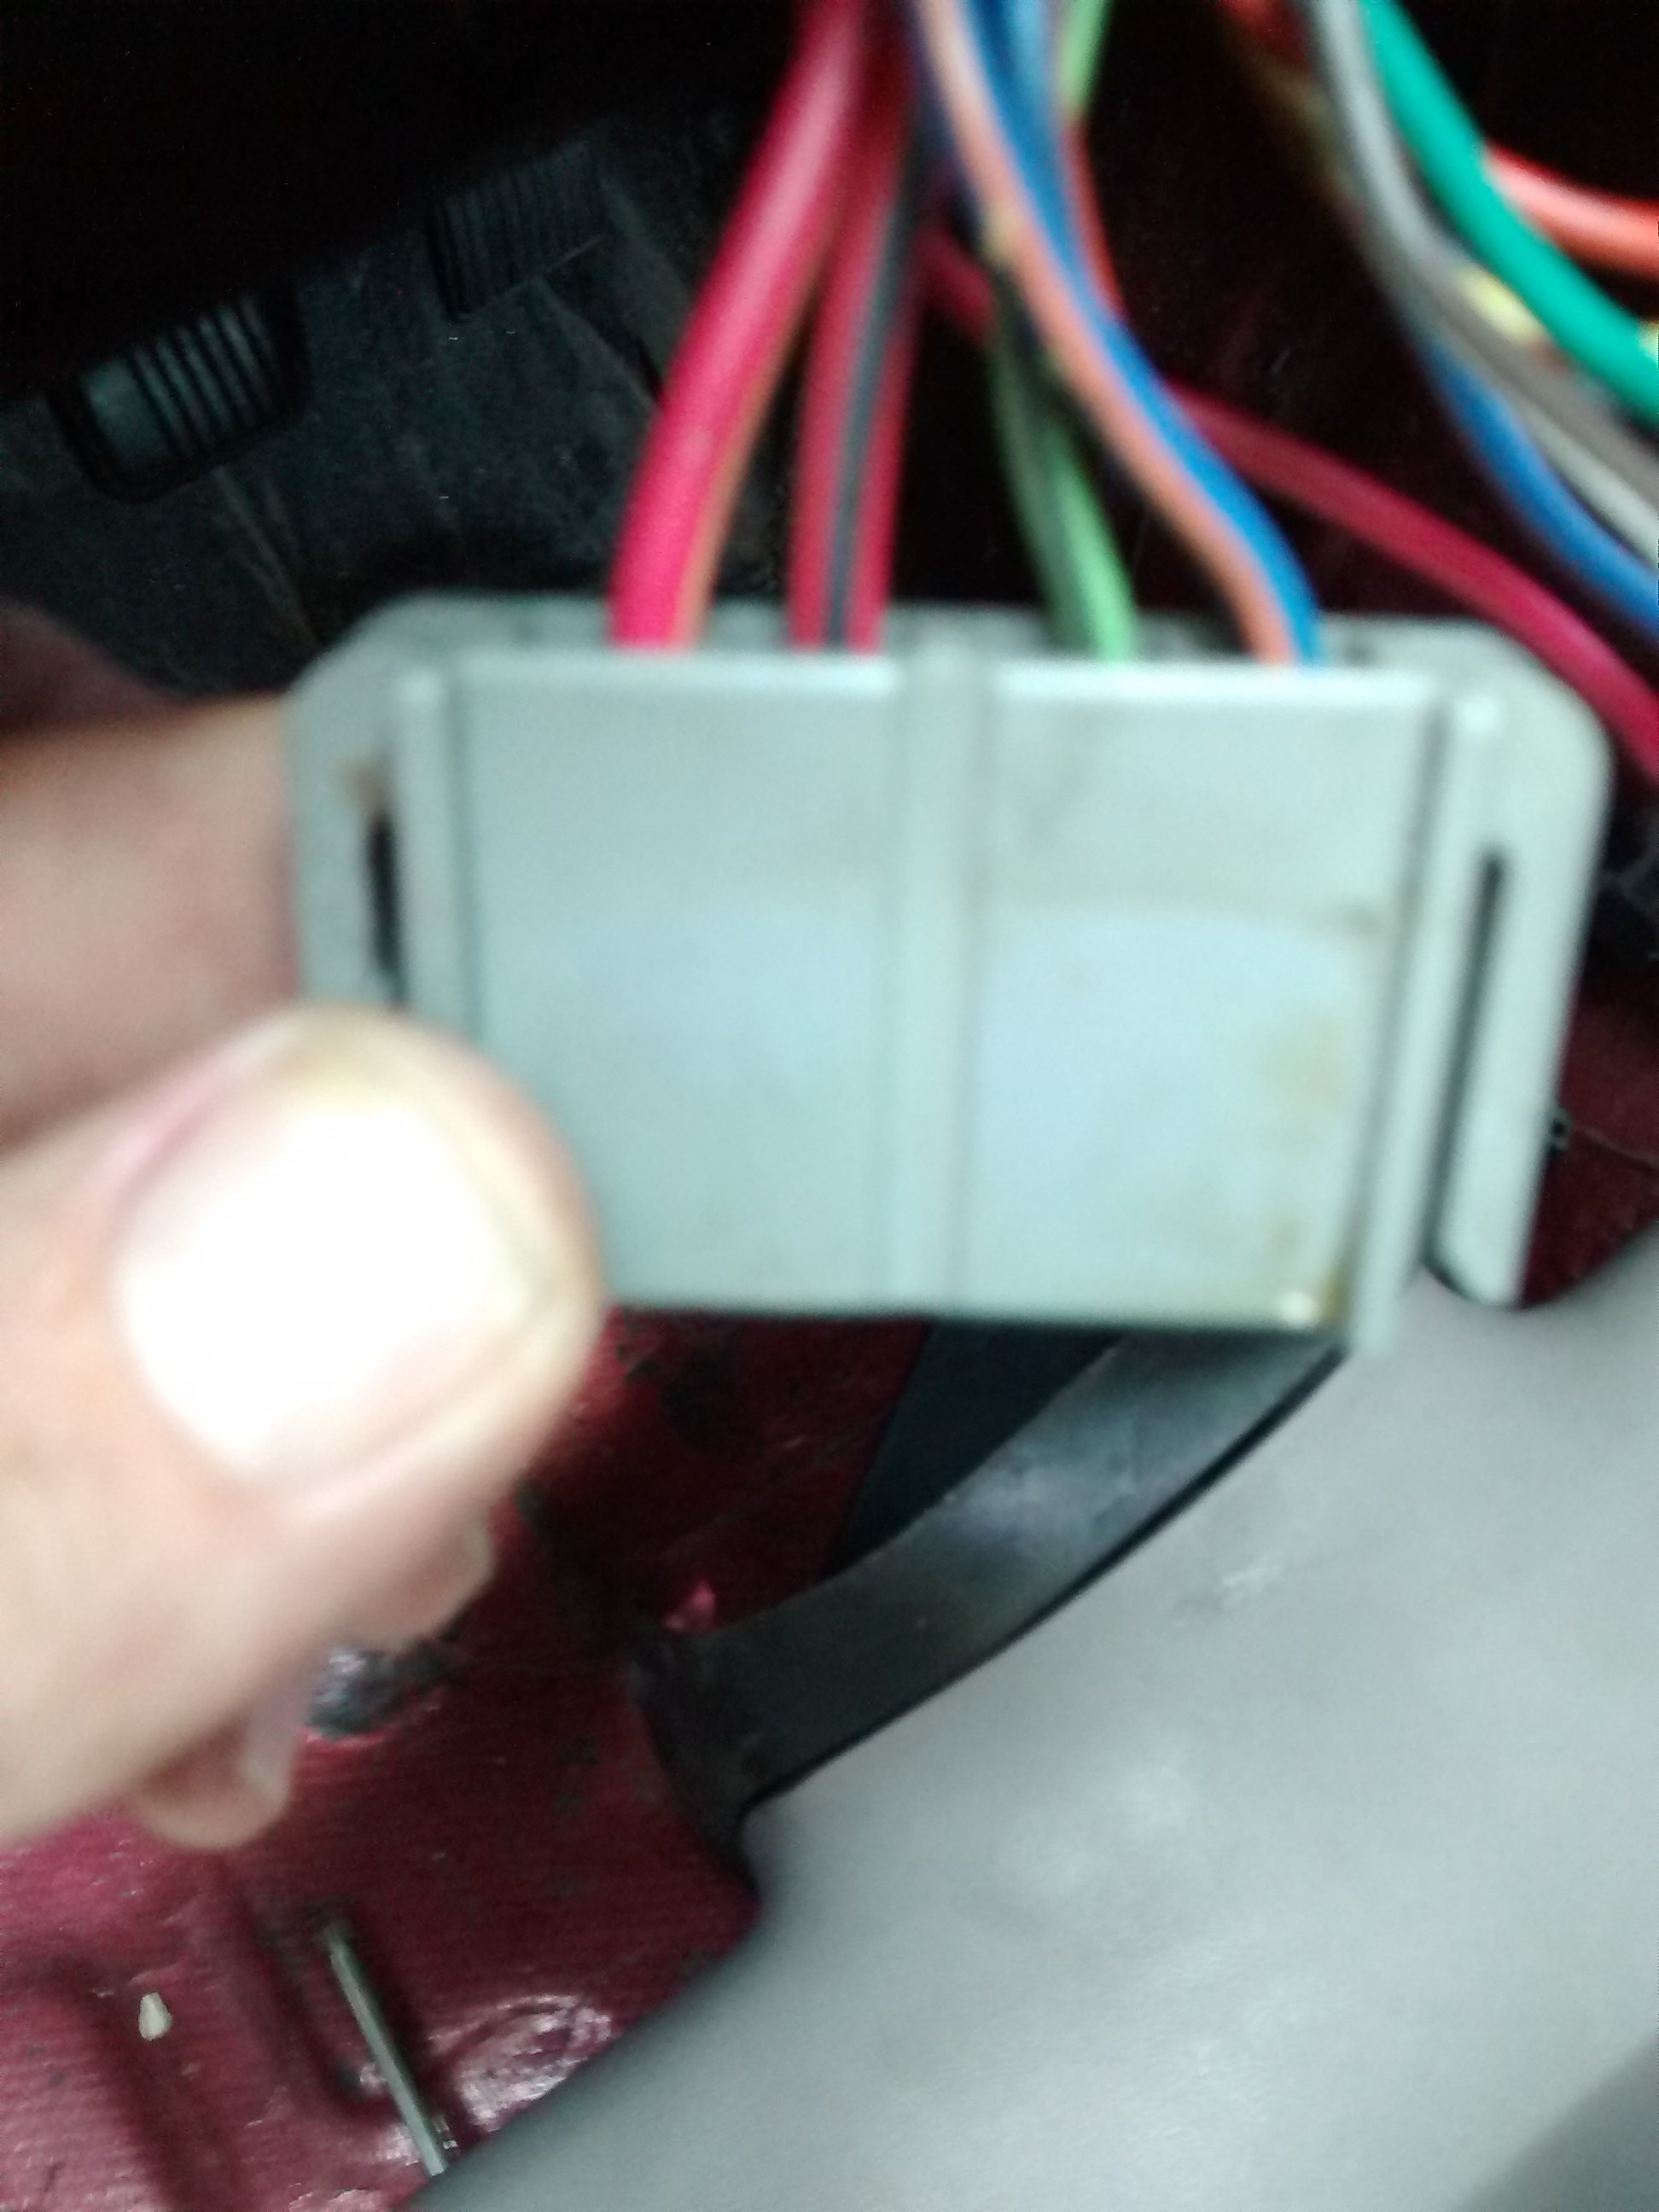 1988 mustang turn signal wiring | Ford Mustang ForumAll Ford Mustangs